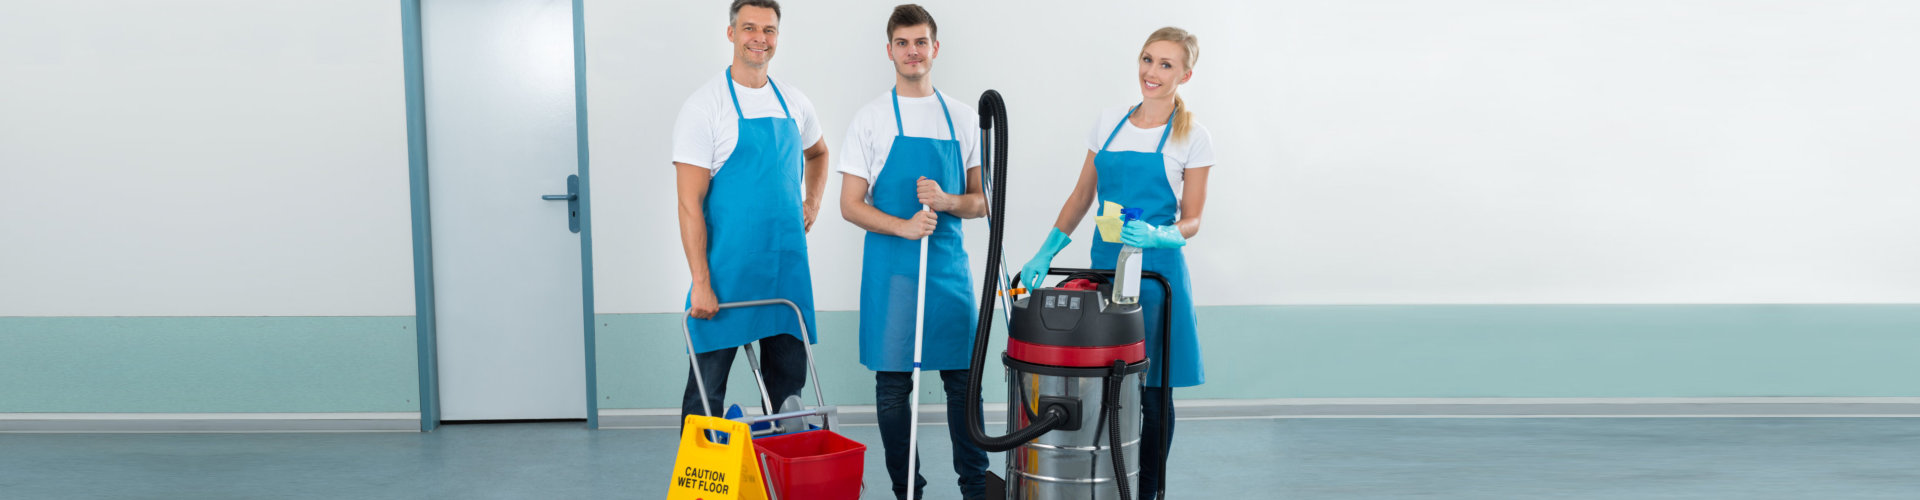 cleaning staff smiling